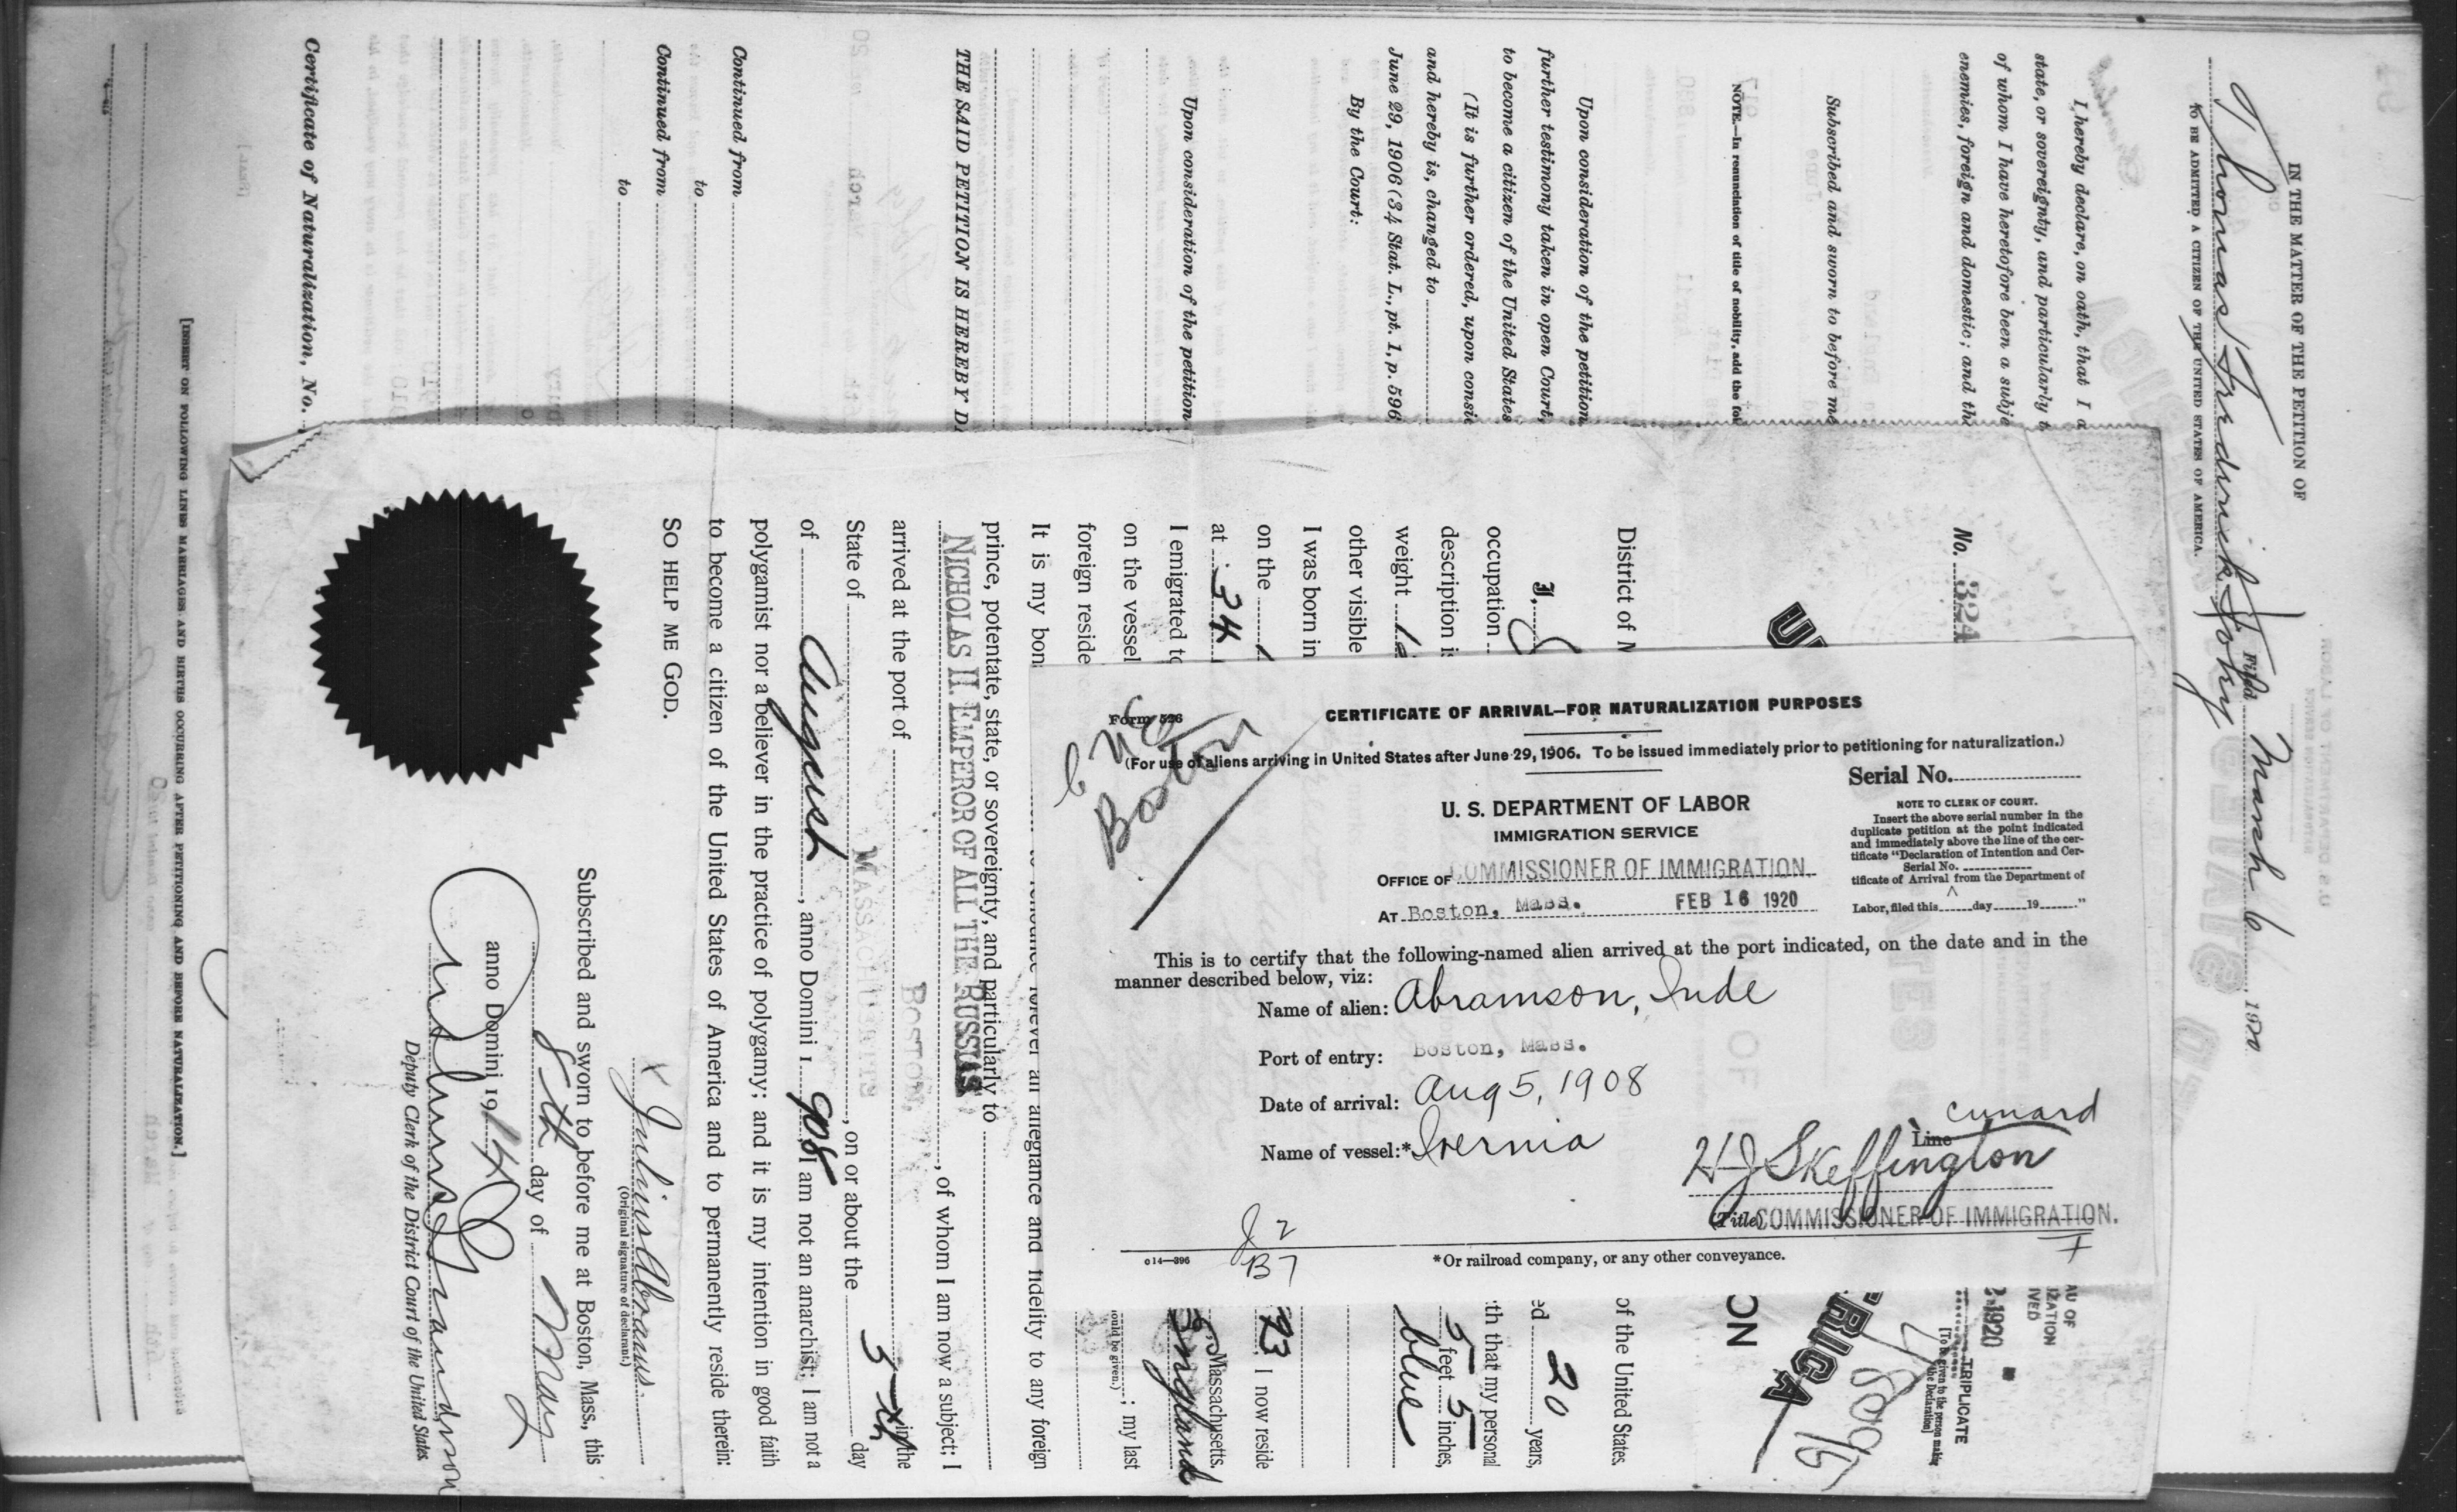 Petition for Naturalization of Abramson, Inde